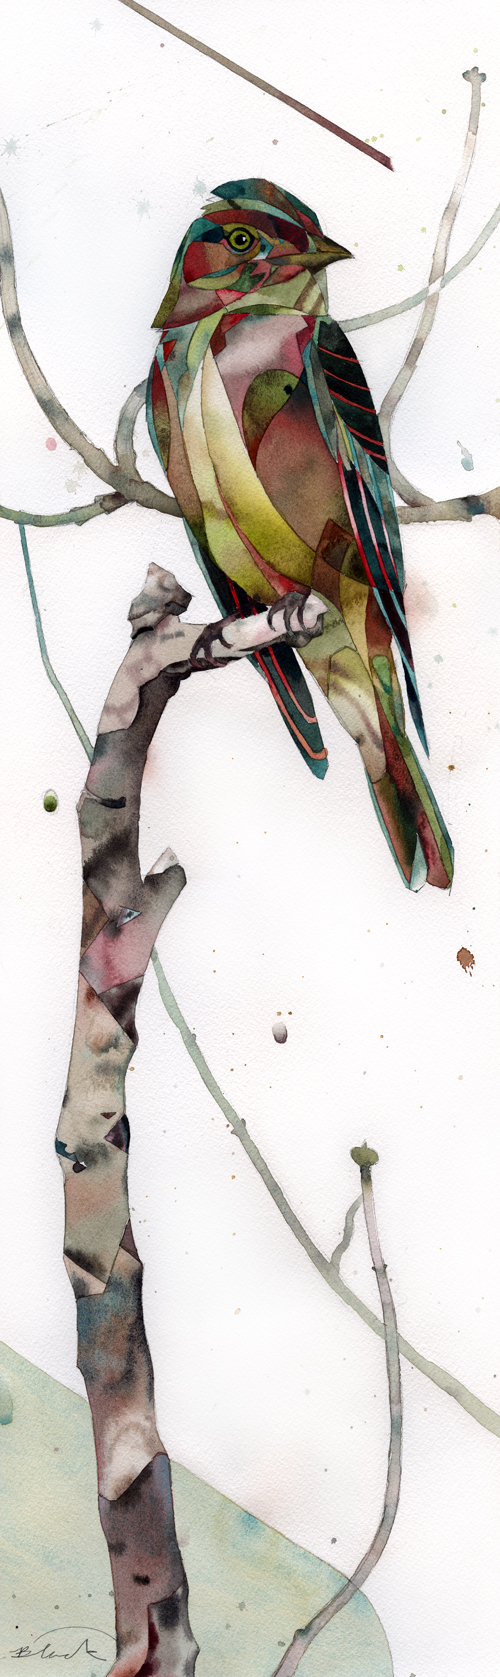 """Chirp368 viewing 26x8"""""""